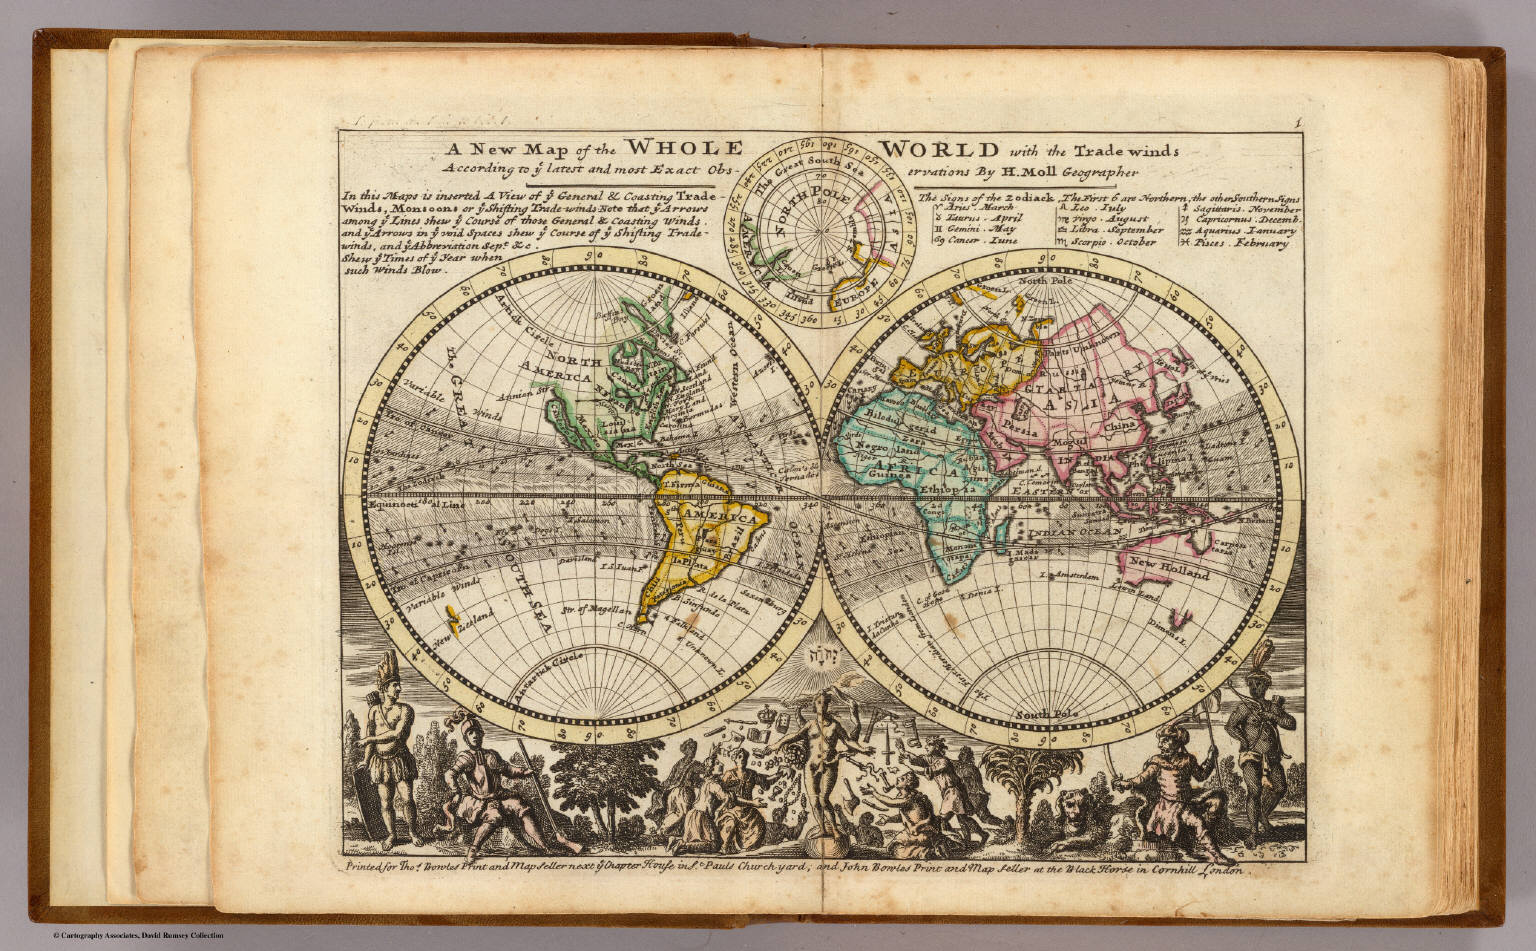 A new map of the whole world with trade winds. - David Rumsey ...